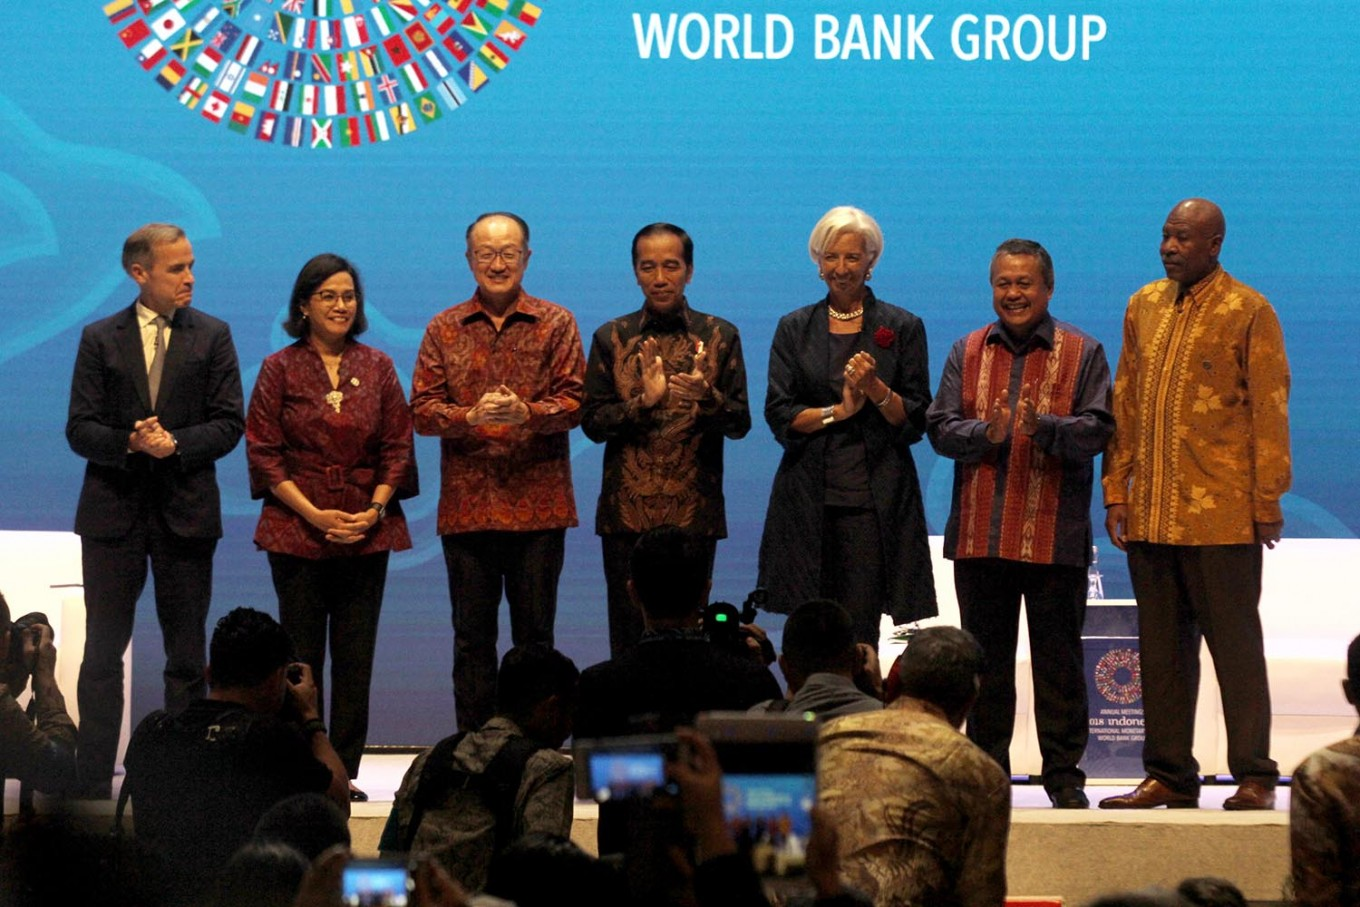 """President Joko """"Jokowi"""" Widodo (center) takes the stage with World Bank president Jim Yong Kim (third left) and International Monetary Fund managing director Christine Lagarde (third right) during a seminar at the 2018 Annual Meetings of IMF-WB Group in Nusa Dua, Bali, on Thursday, October 11, 2018. The event, which will run until Friday, features 32,000 attendees, including finance ministers and central bankers from 189 nations. JP/Zul Trio Anggono"""